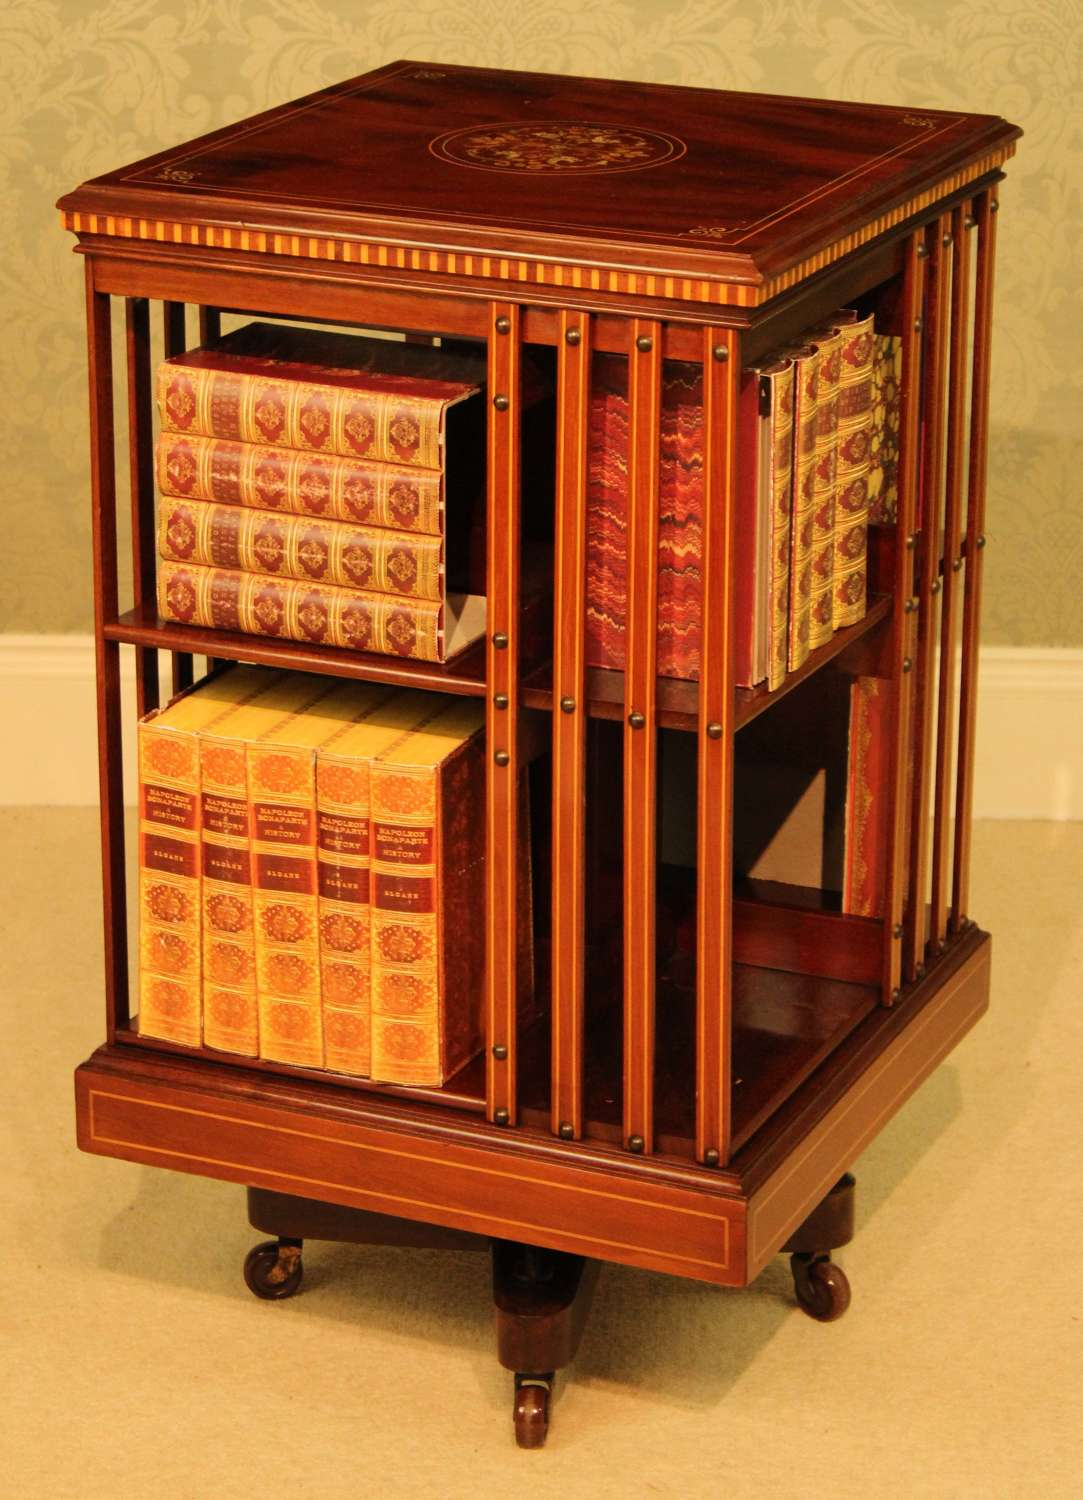 A Late Victorian Mahogany inlaid revolving bookcase by Maple & Co